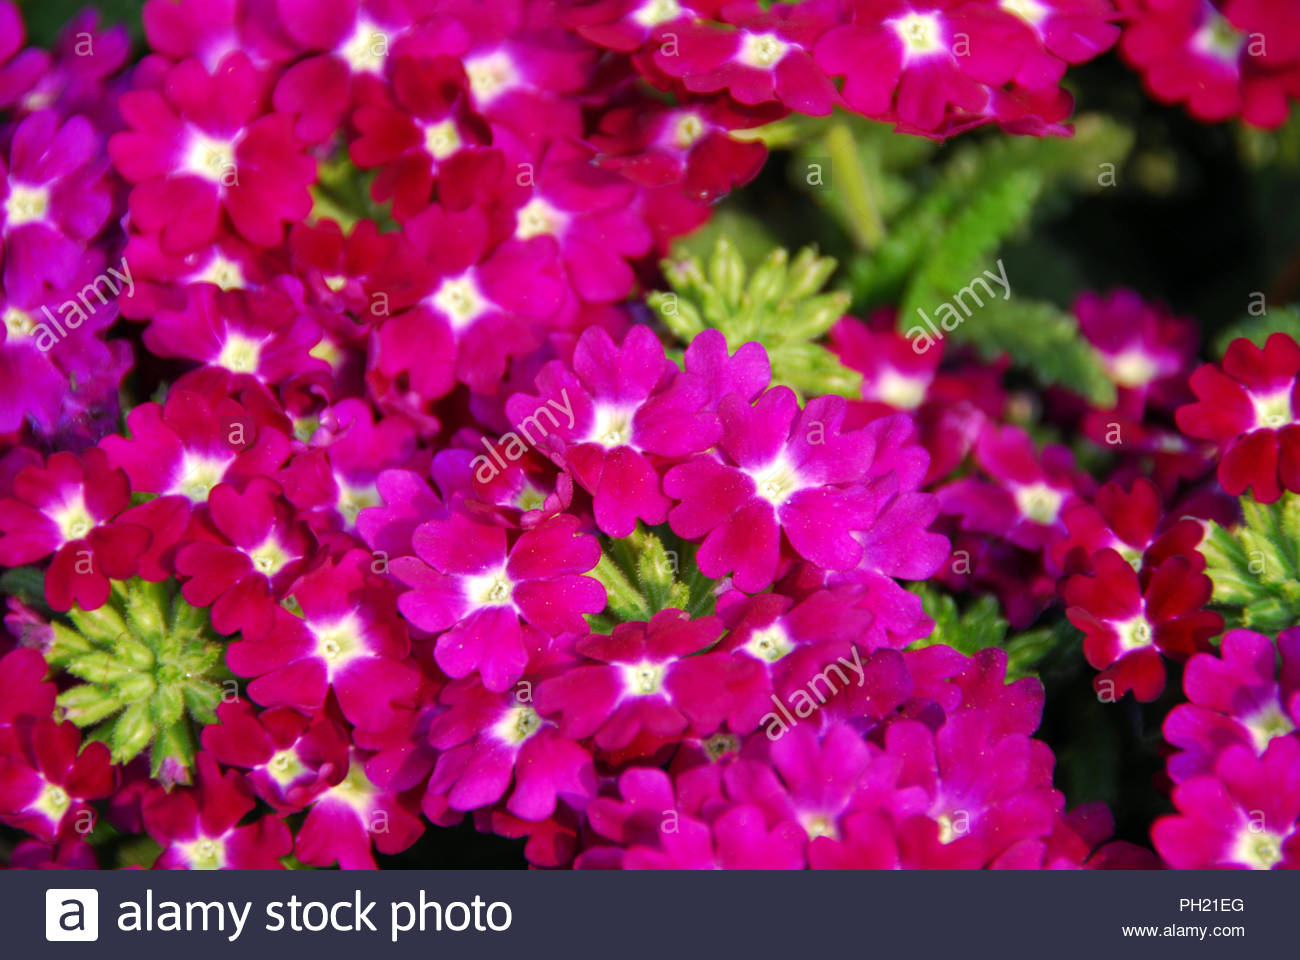 Small Pink White Flowers Blooming In A Round Pattern Stock Photo